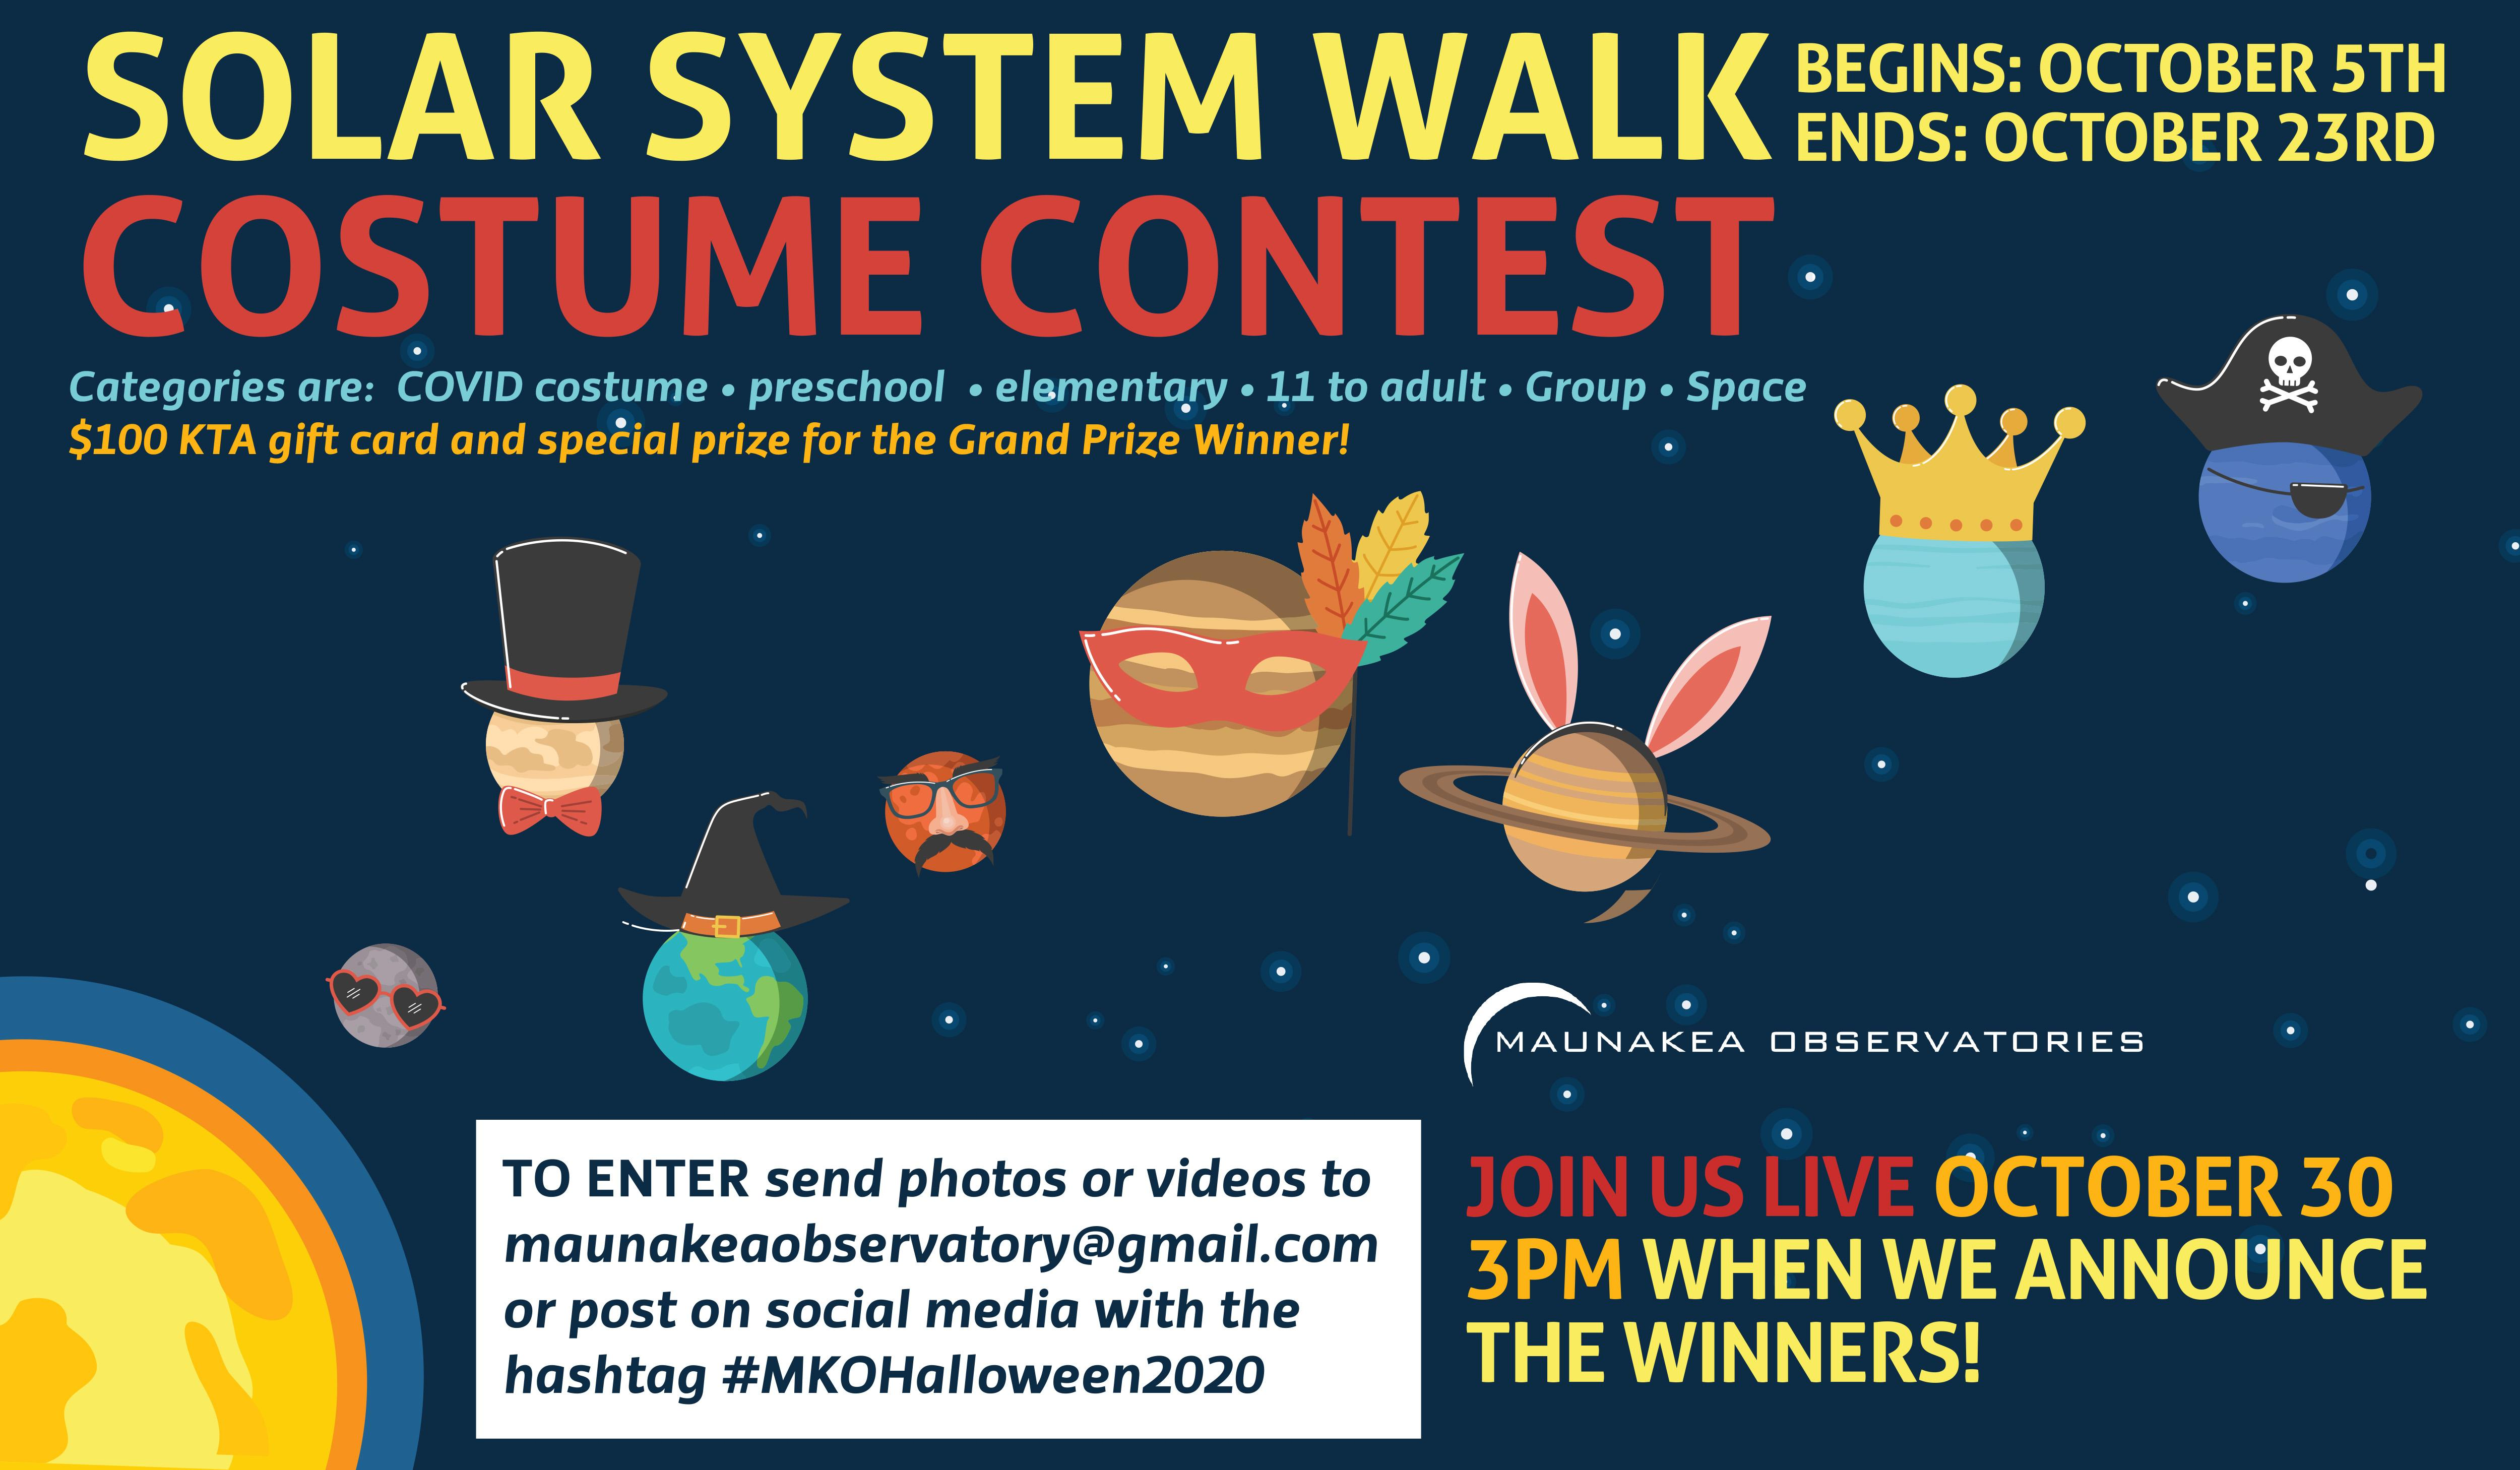 Solar Walk Costume Contest Flyer